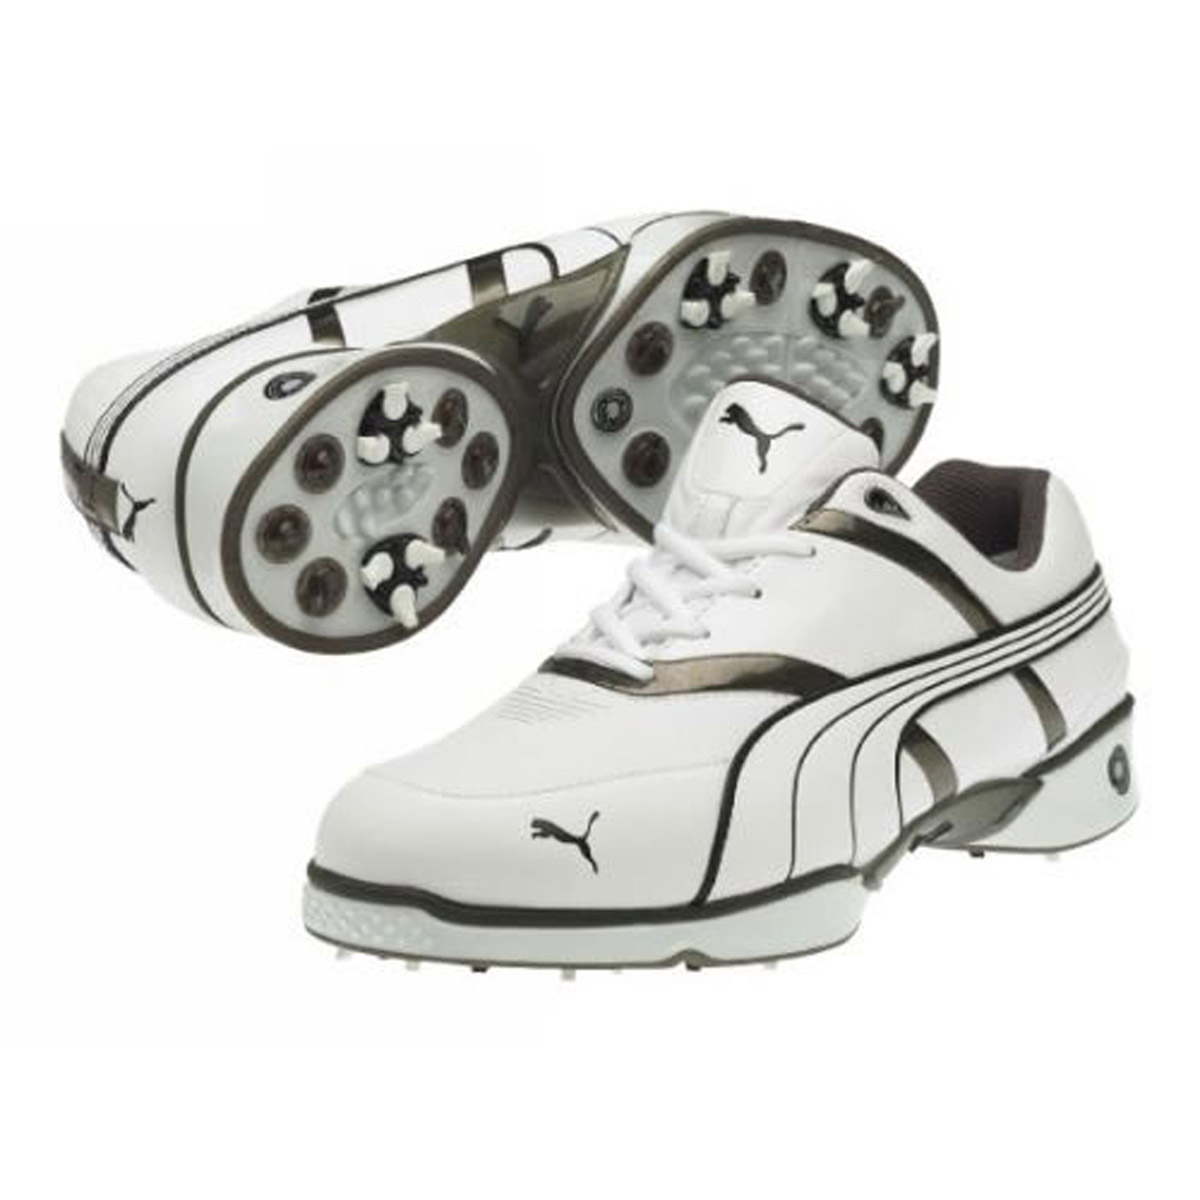 Puma-Men-039-s-Harpia-Argyle-Golf-Shoes-White-Metallic